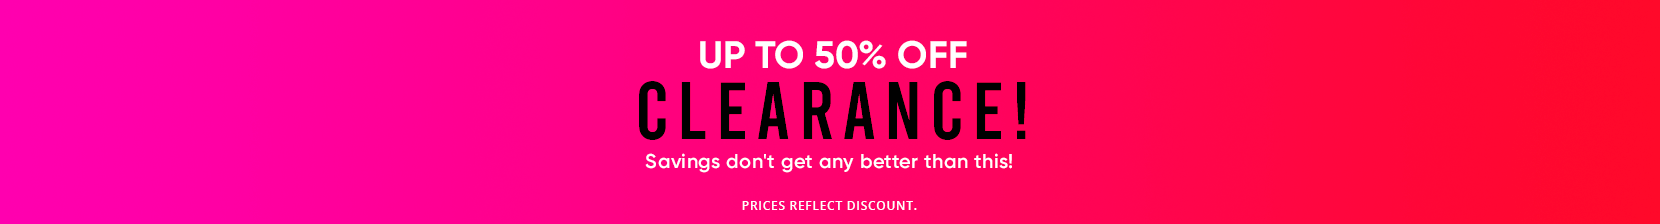 up to 50% off clearance! savings don't get any better than this. prices reflect discount